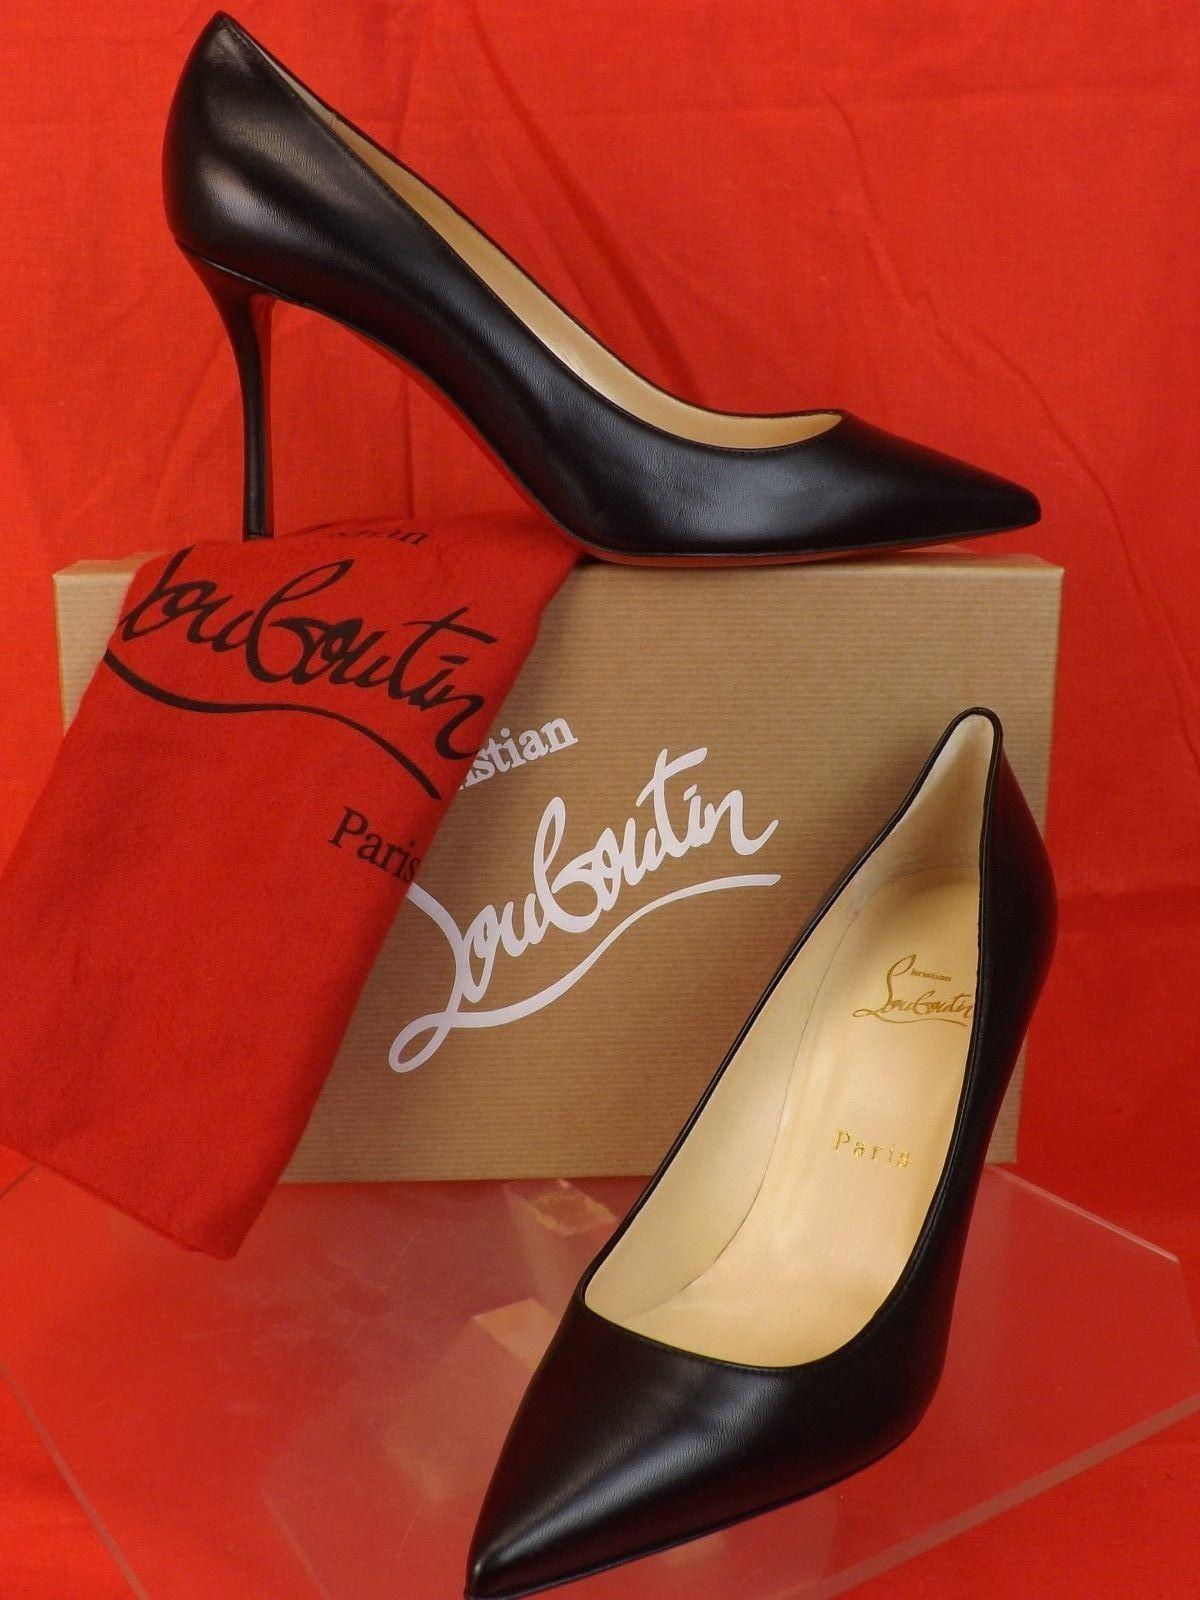 christian louboutin plate peach nouvelle plate louboutin - forme talon rouge femmes Madame fashion italie à chaussures. ef6b39